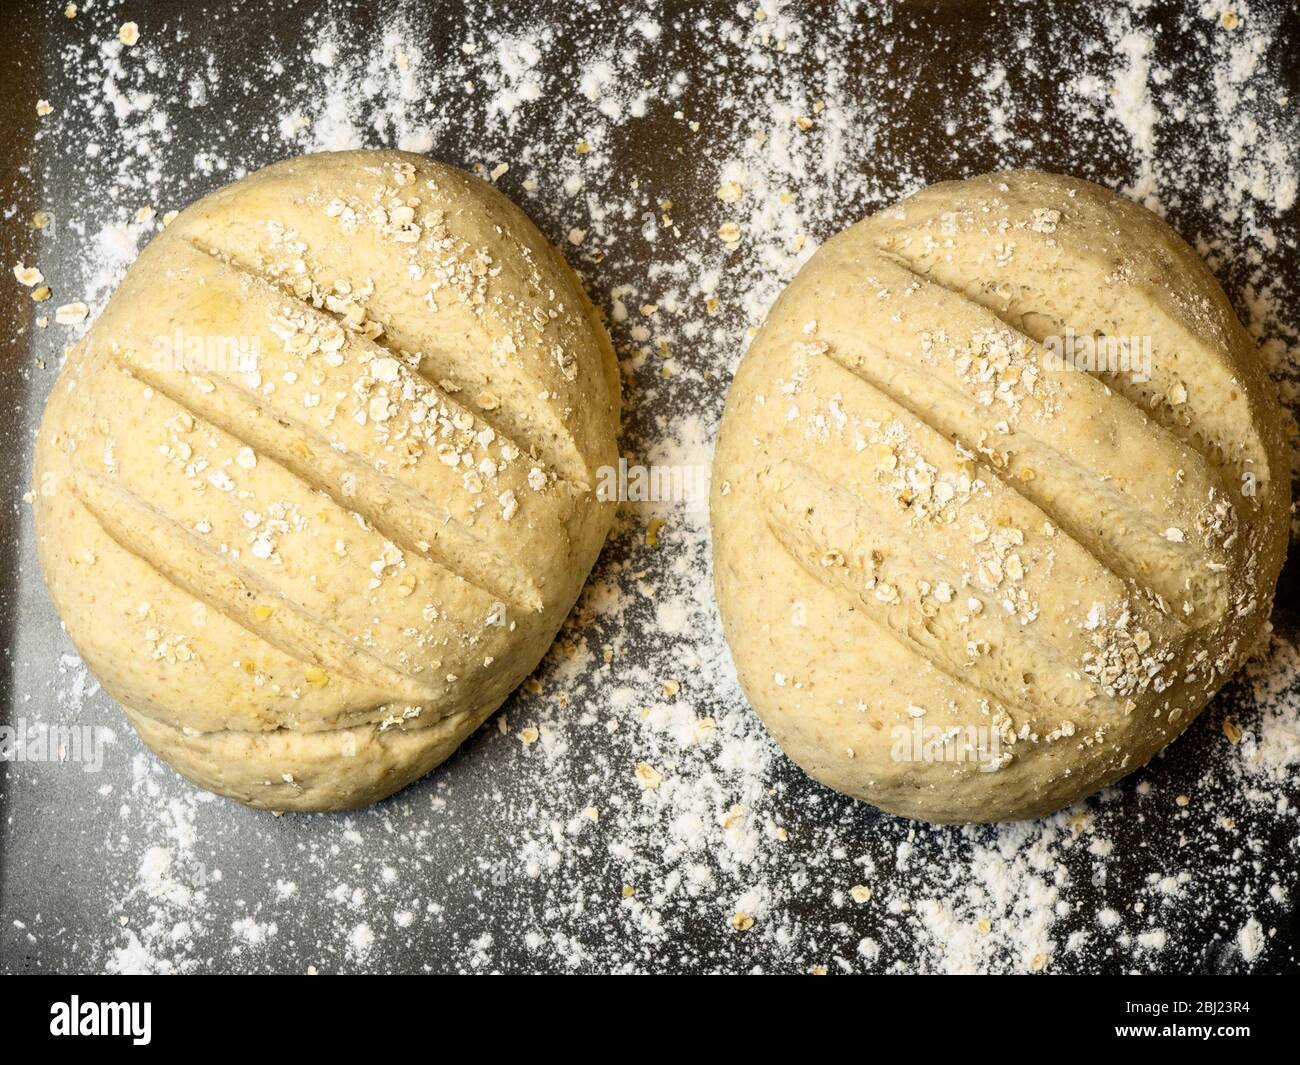 Two proved oat bread loaves ready for baking on a floured baking sheet Stock Photo